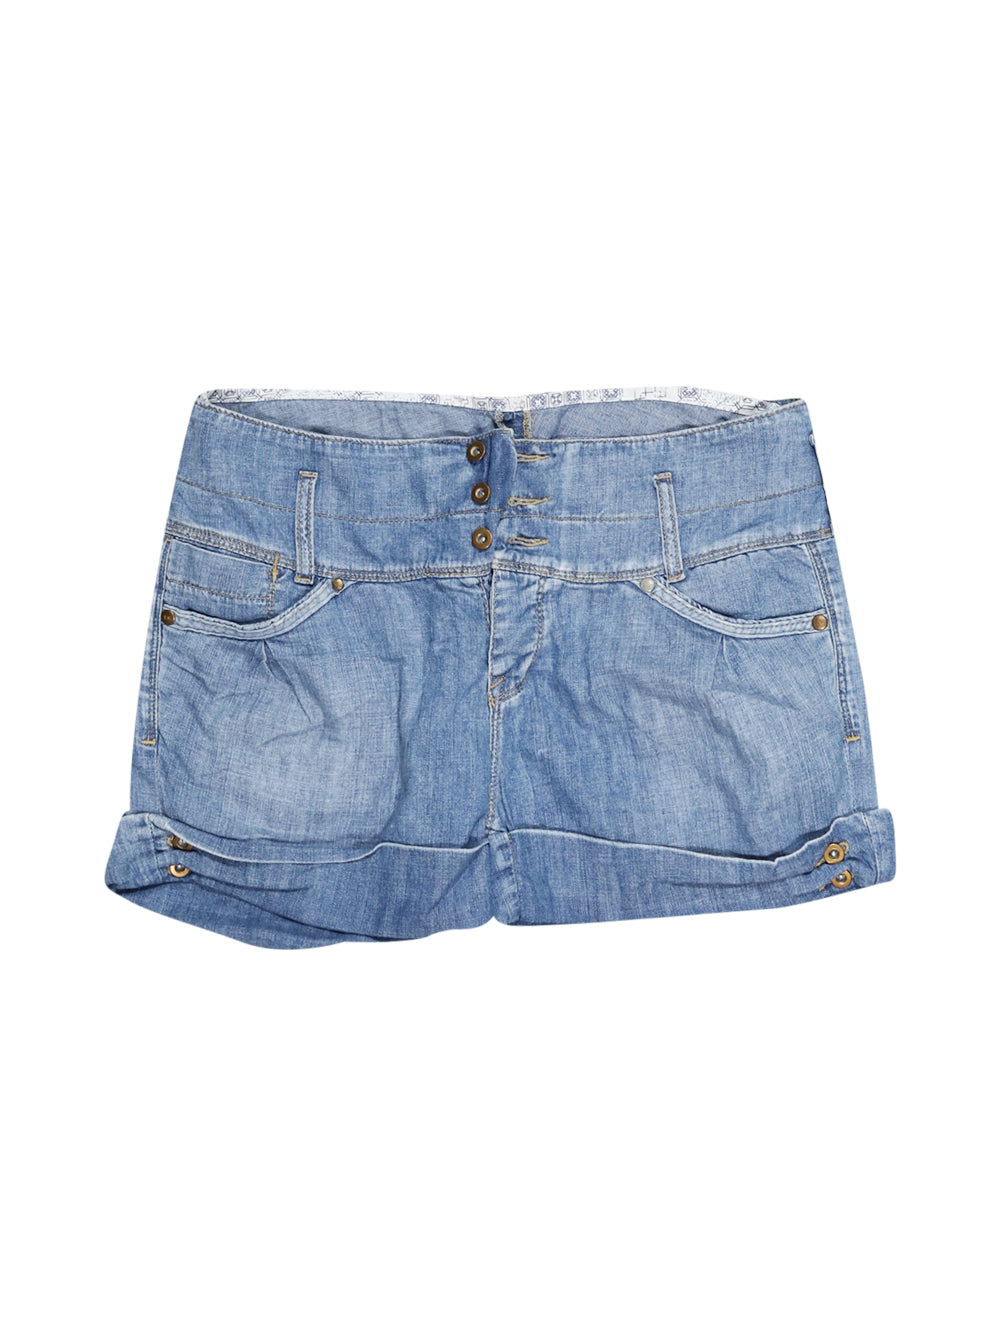 Front photo of Preloved Lee Light-blue Woman's shorts - size 12/L